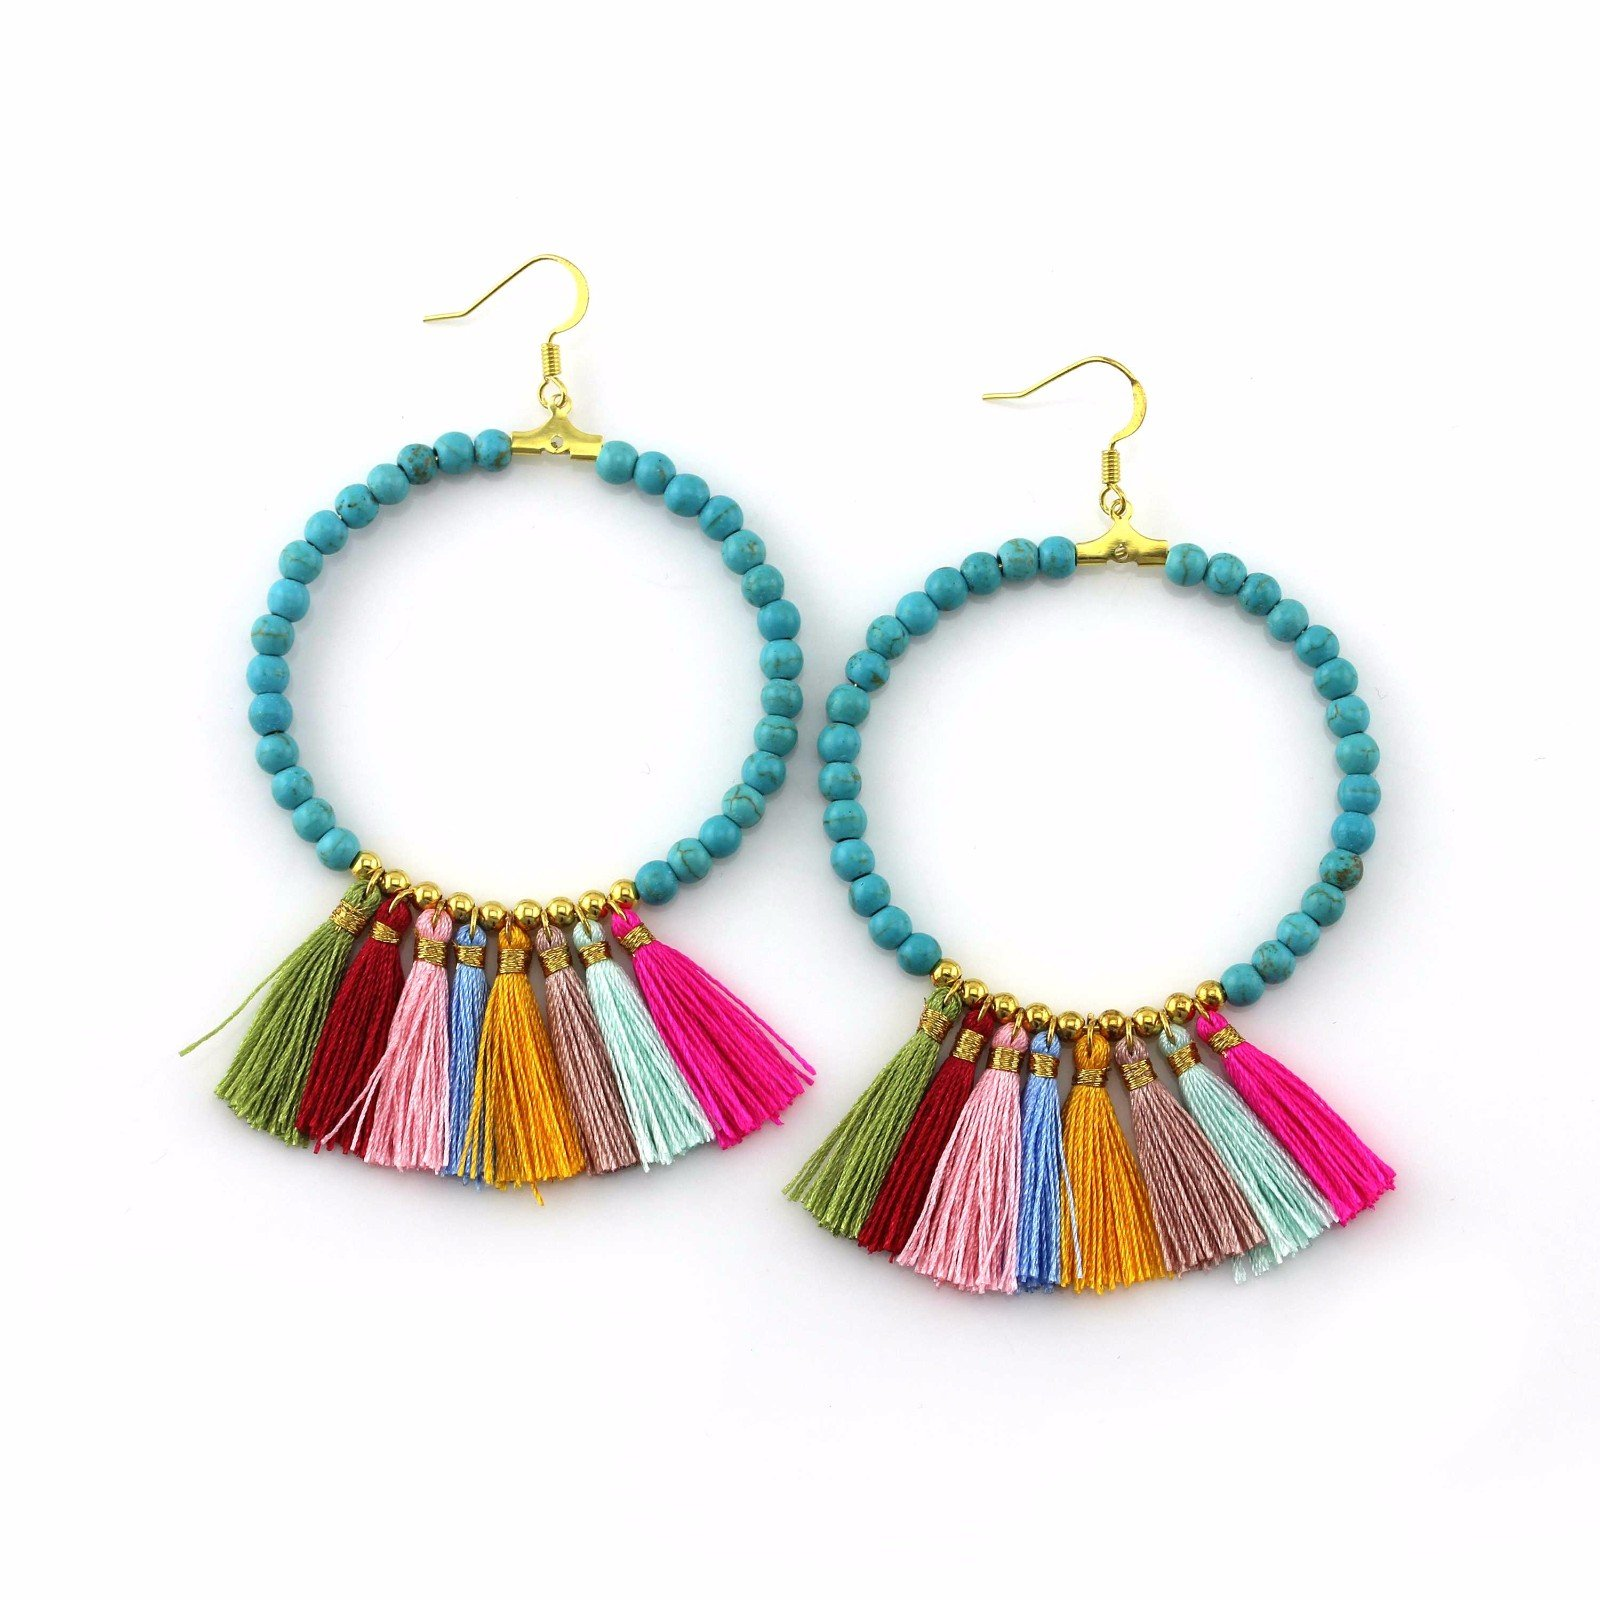 Handmade blue color beads 7 tassels style hoop earrings